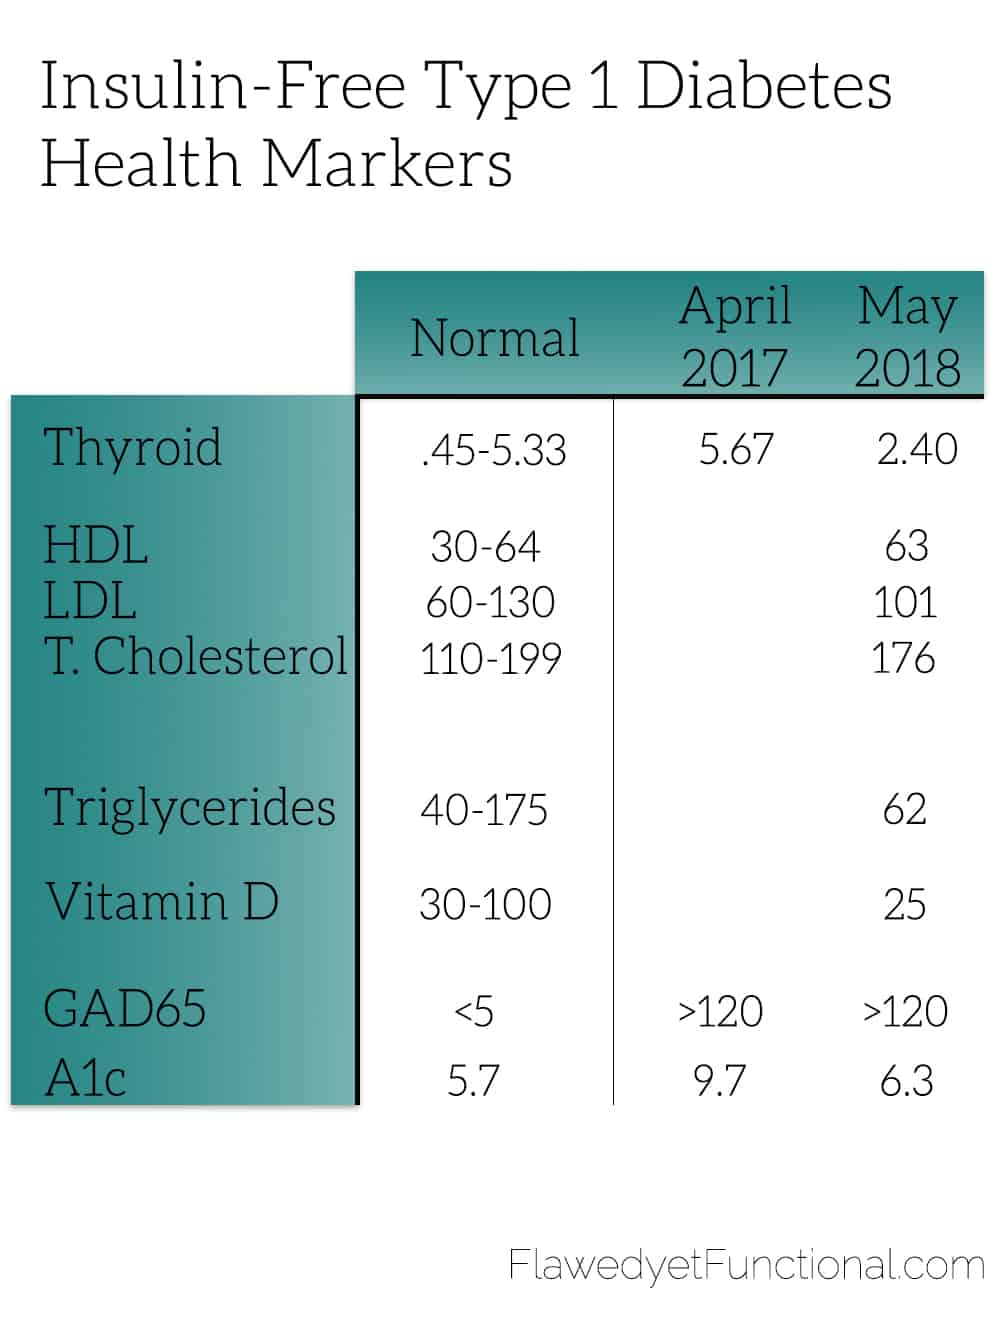 type 1 diabetes health markers